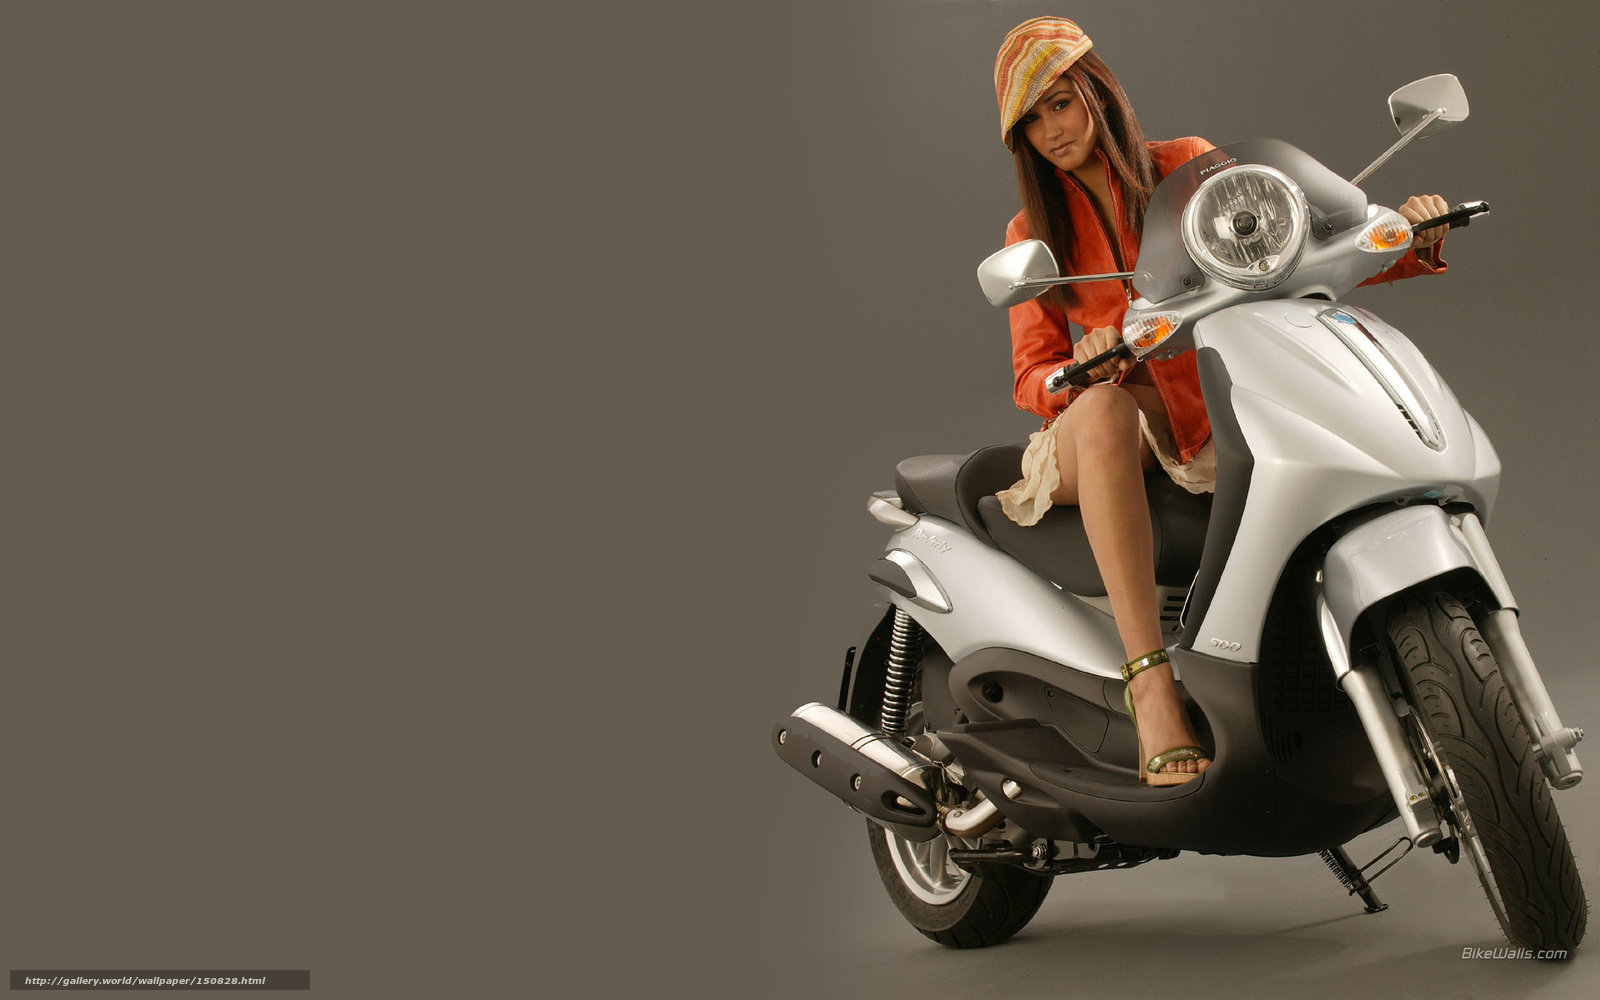 Download Wallpaper Piaggio, Beverly, Beverly 500, Beverly